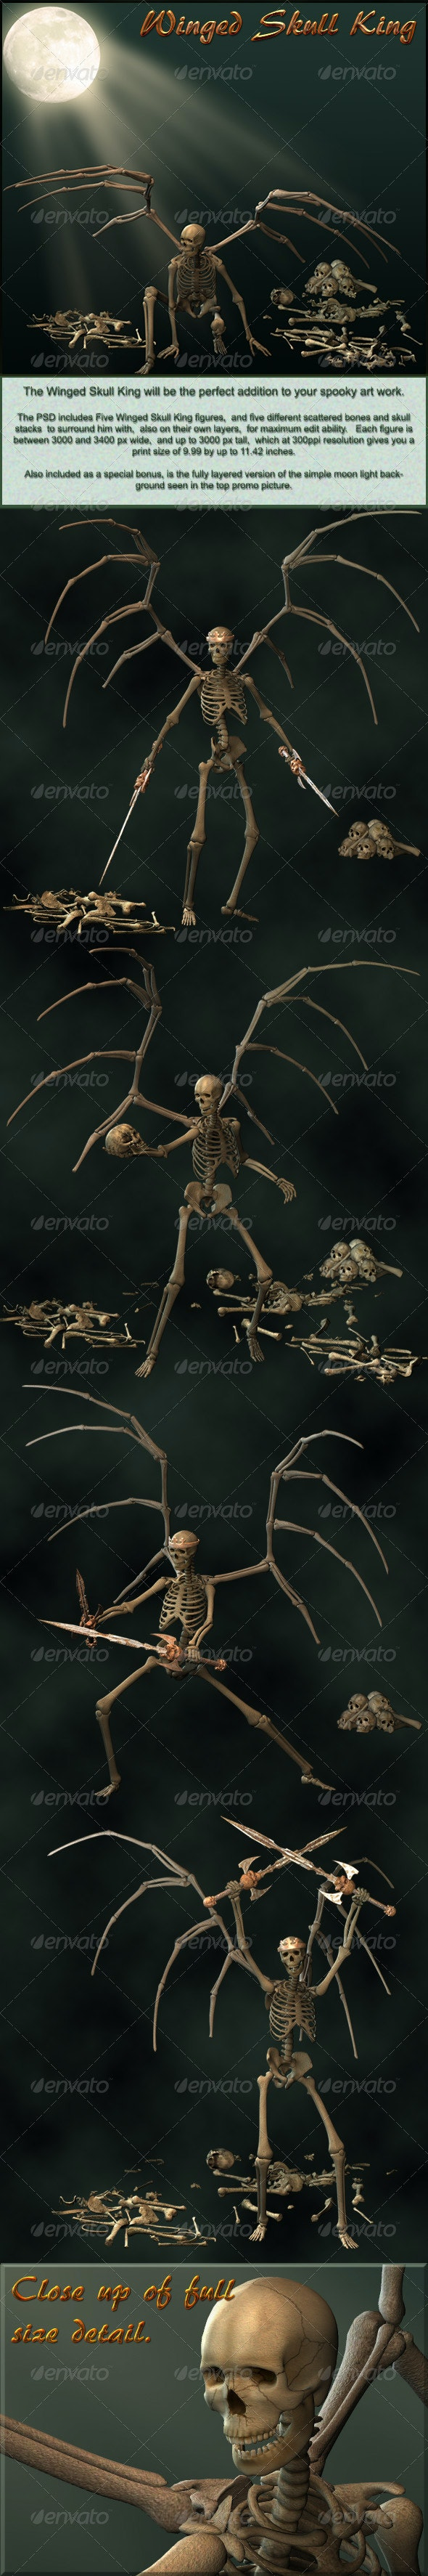 Winged Skull King with Scattered Bones  PSDs  - Characters 3D Renders